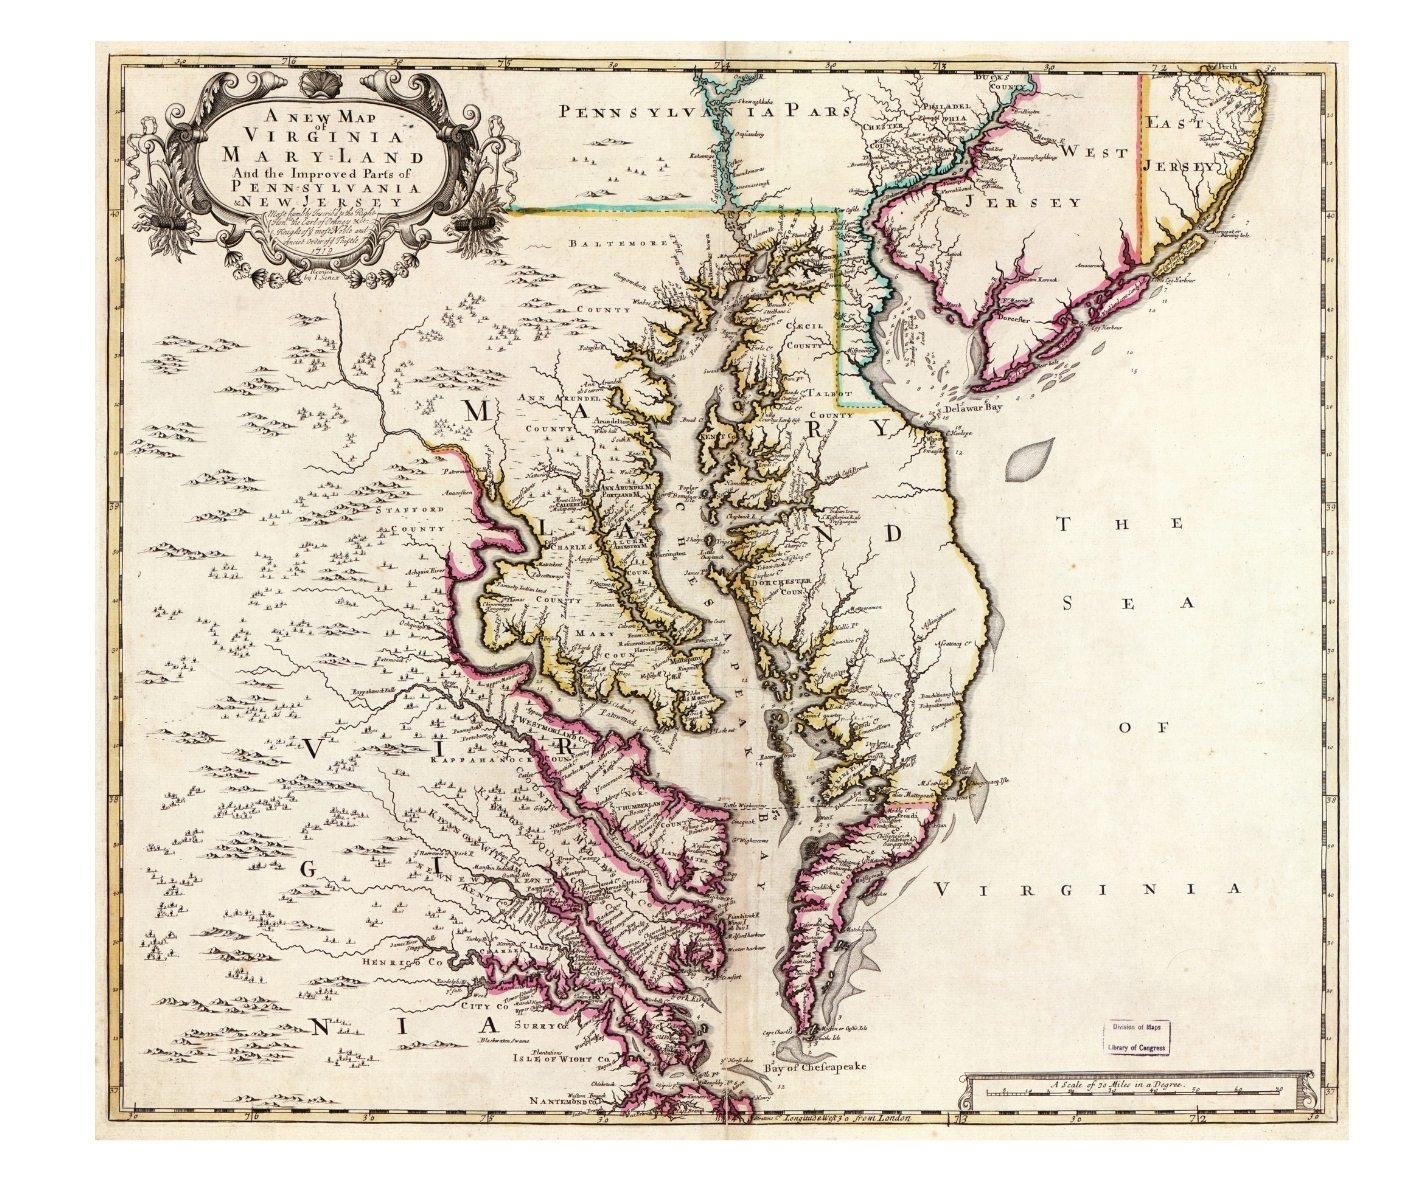 Shifting Shores: Immigration Stories & Maryland's Eastern Shore